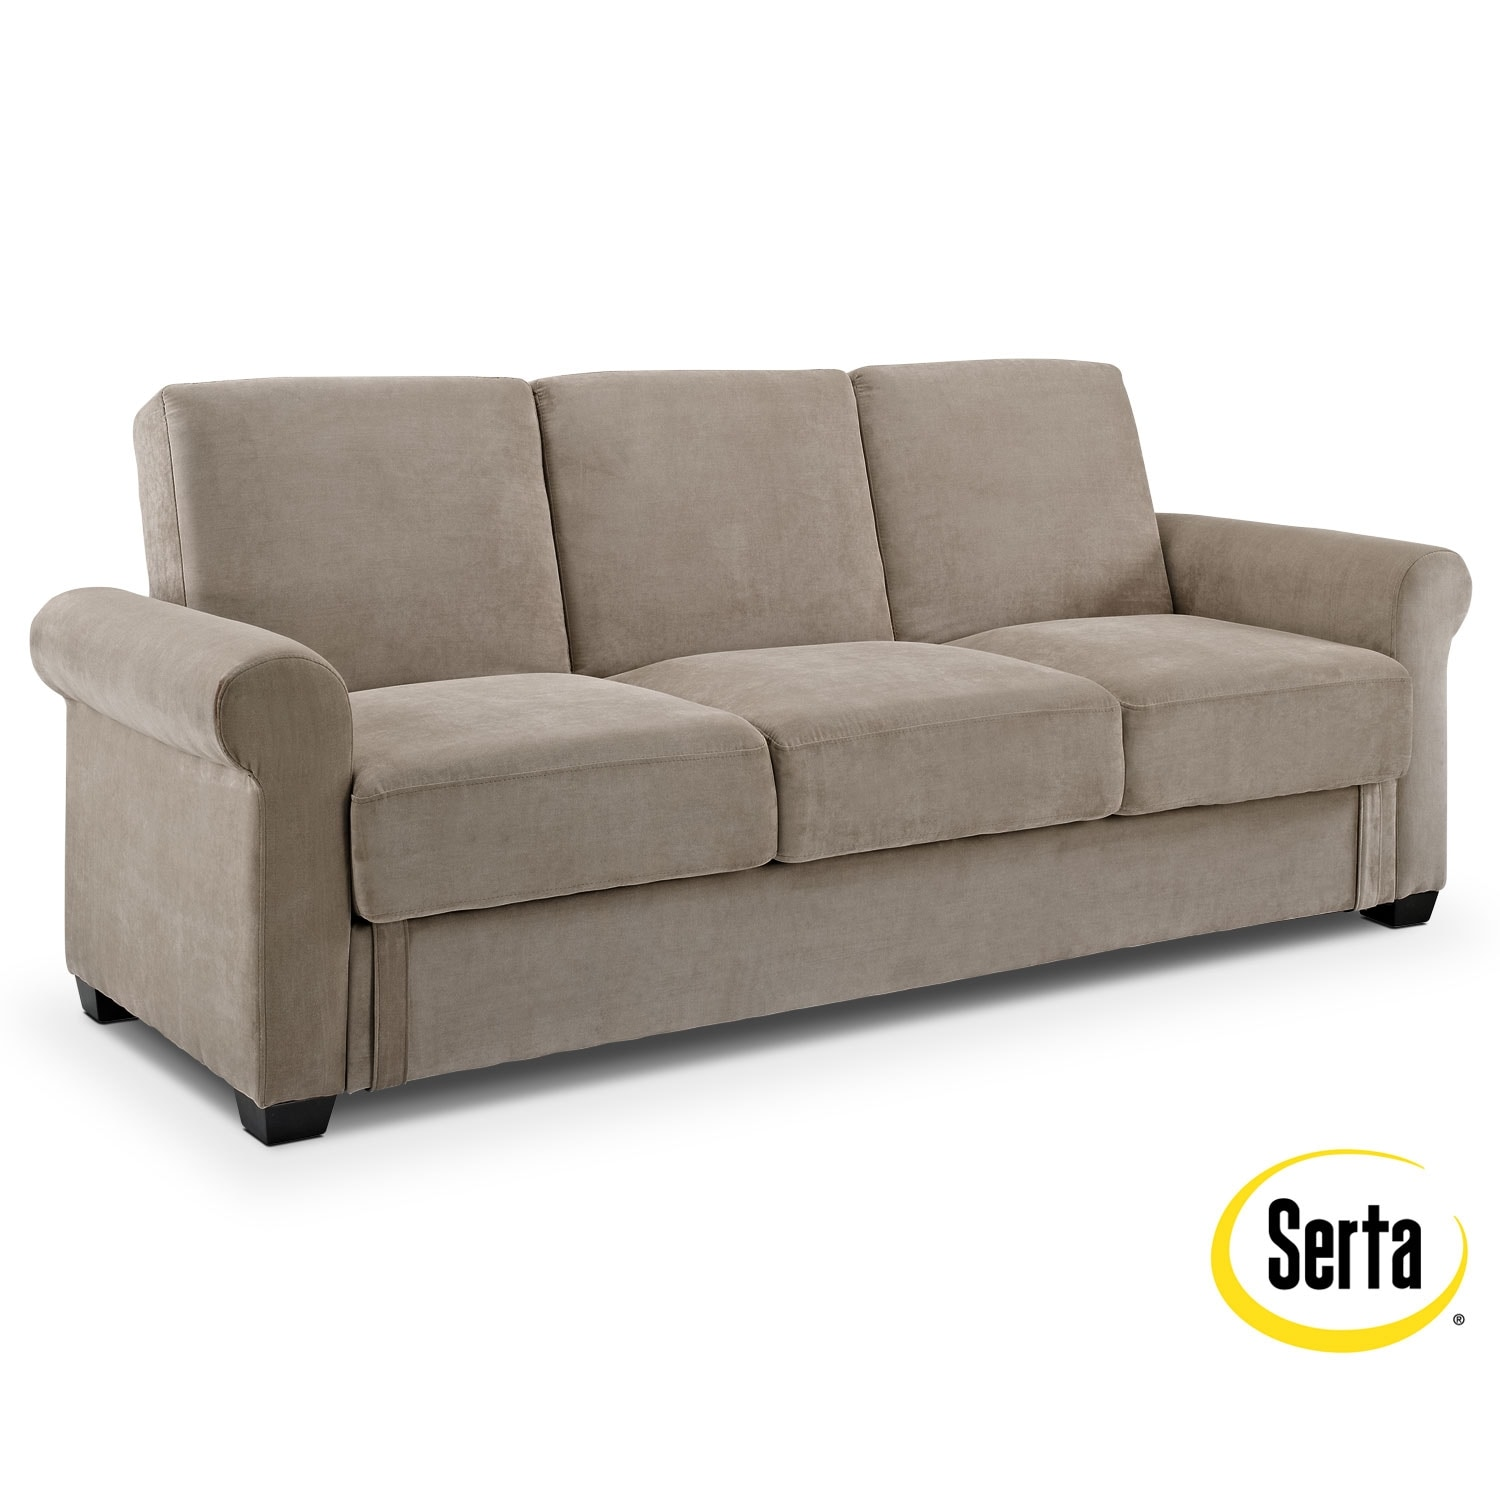 Accent and Occasional Furniture - Thomas Futon Sofa Bed with Storage - Light Brown